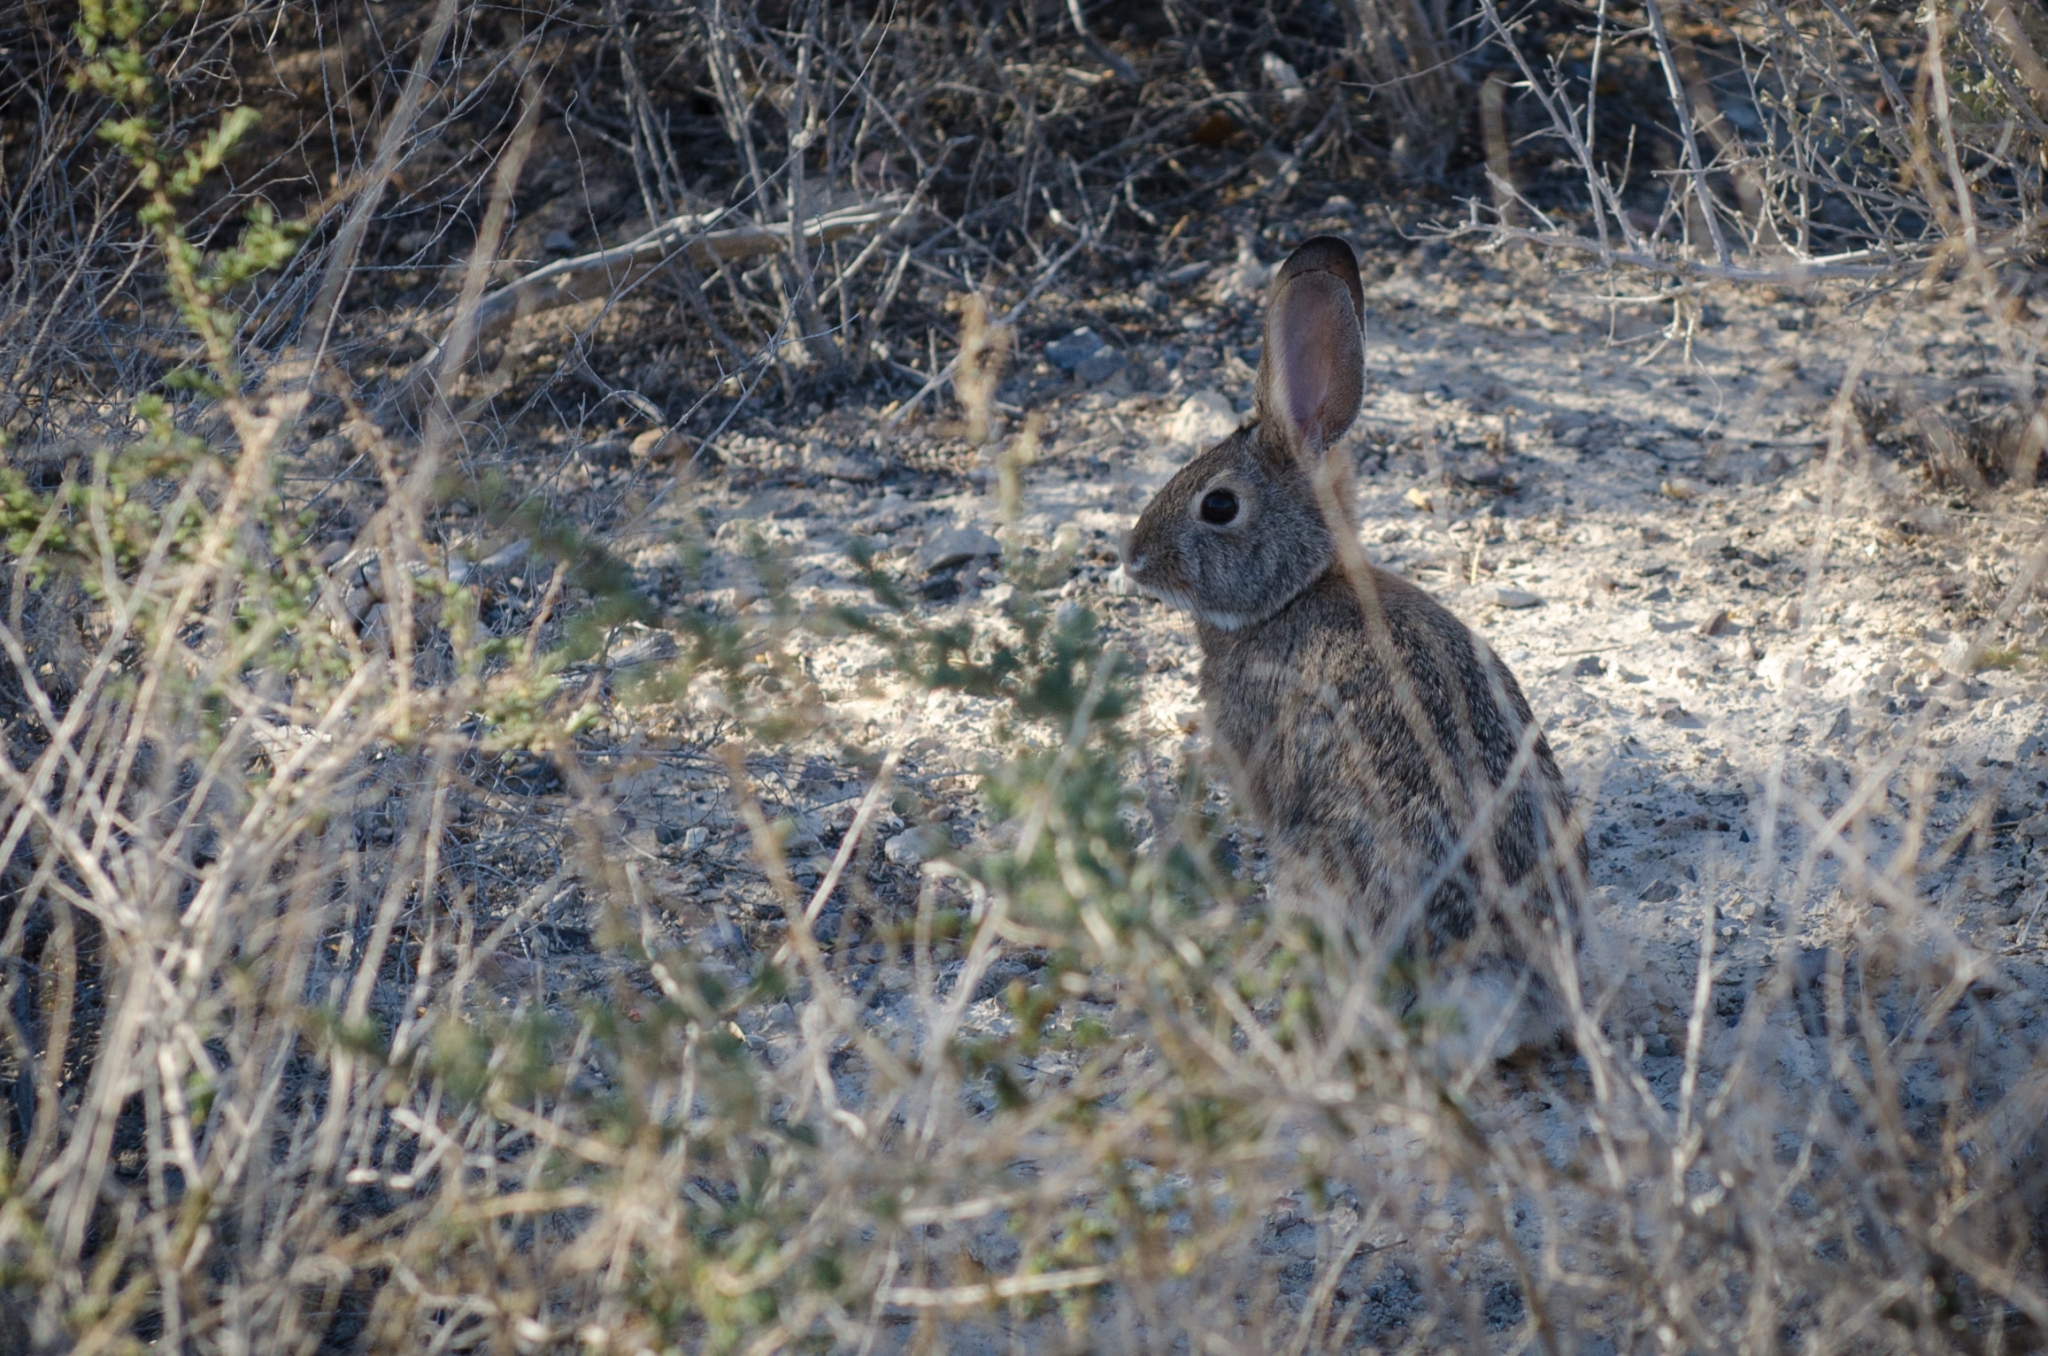 La lepre Desert Cottontail (Sylvilagus audubonii) nel parco Ash Meadows National Wildlife Refuge